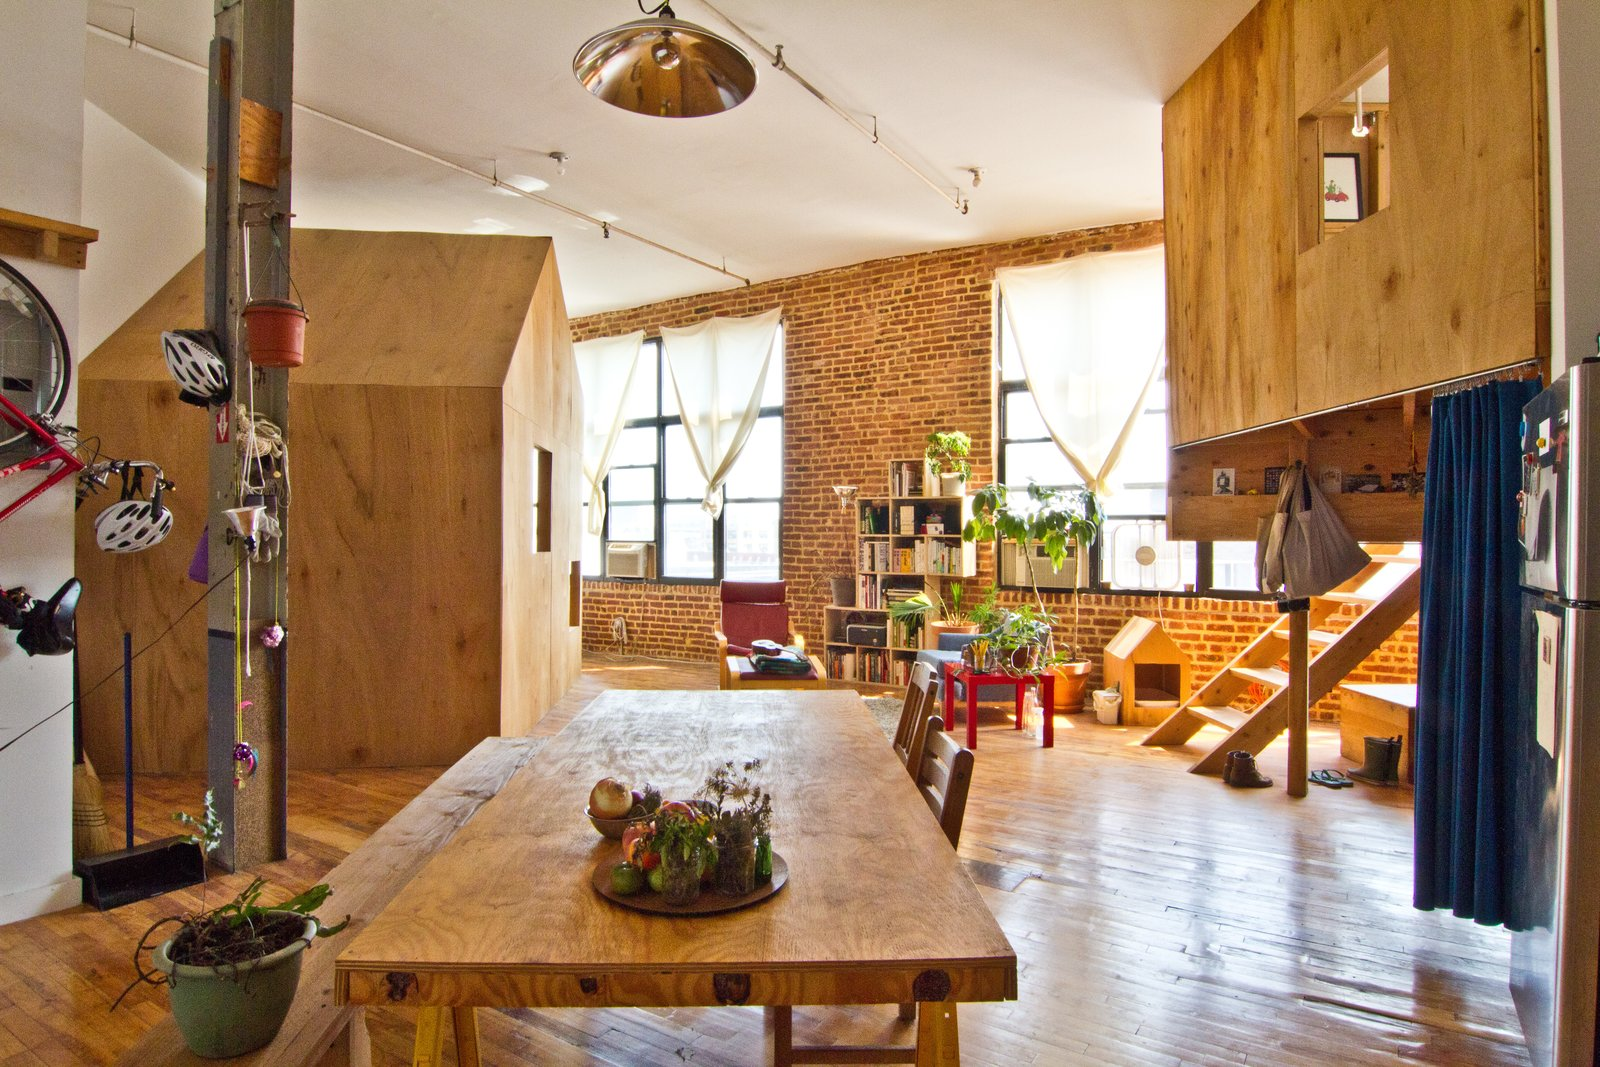 Cabin in a Loft, Brooklyn, New York.  Photo 7 of 7 in Airbnb Comes Home Preview